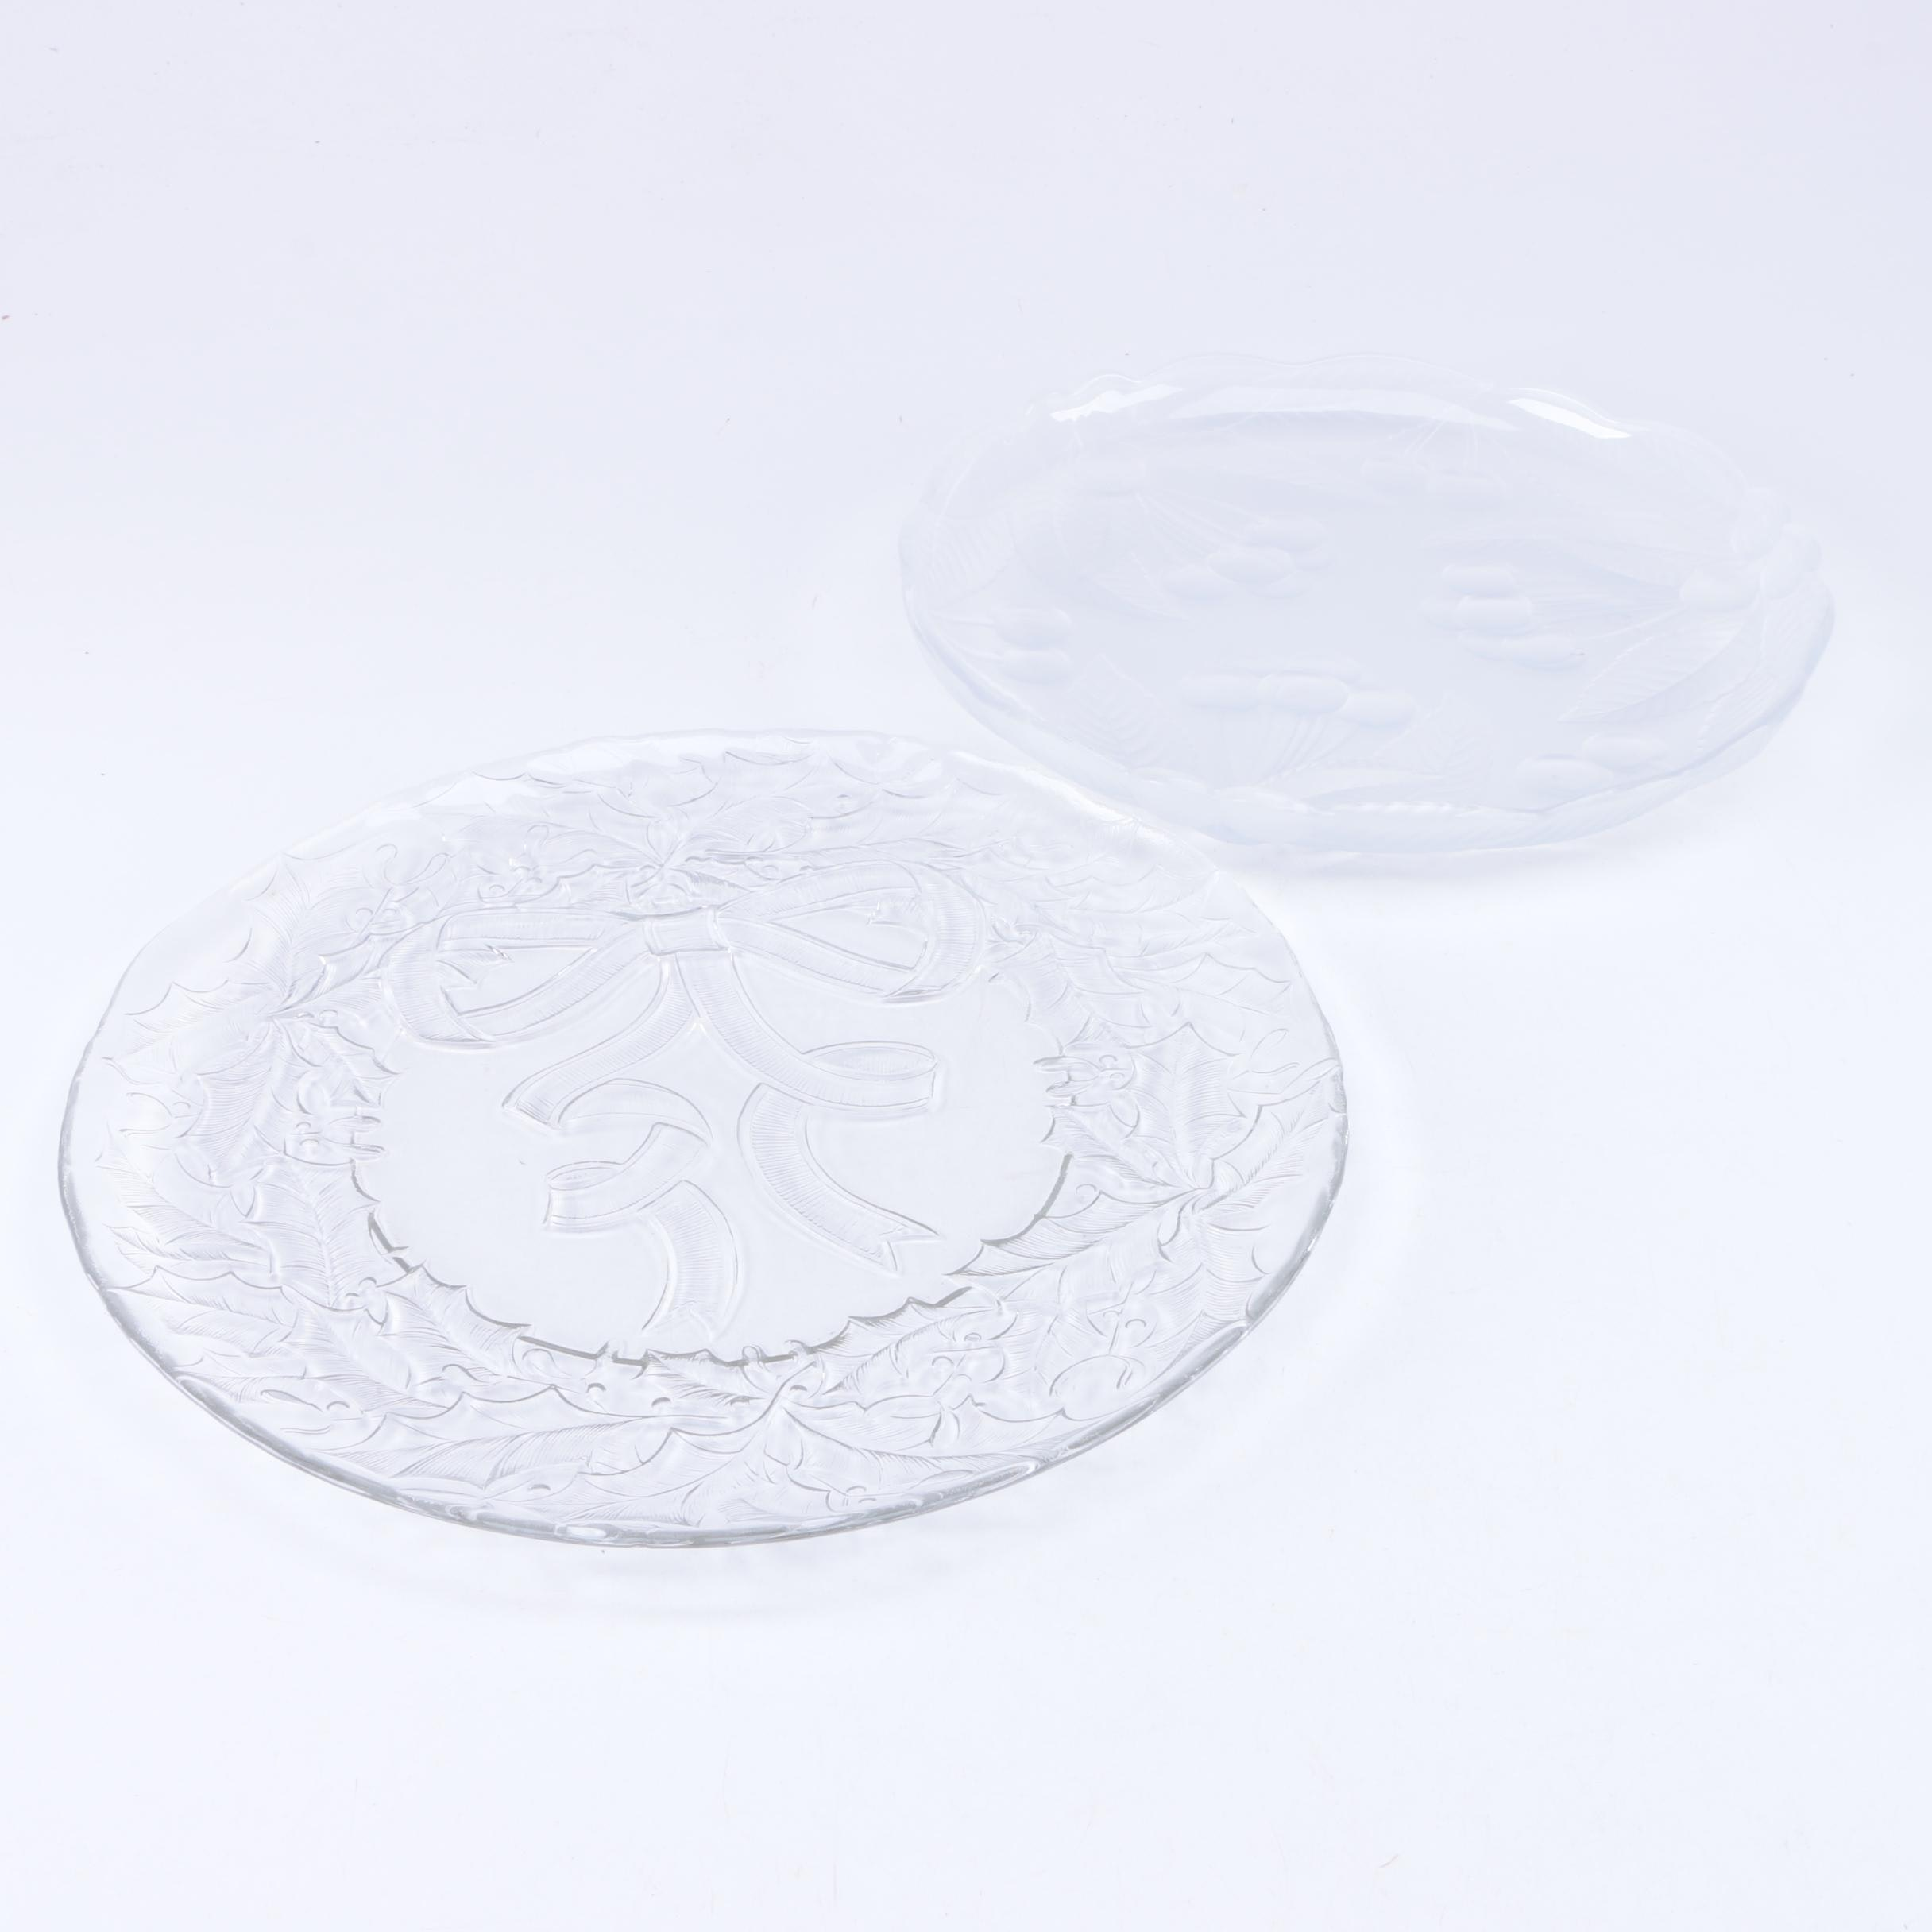 Glass Plates with Pressed Glass Designs